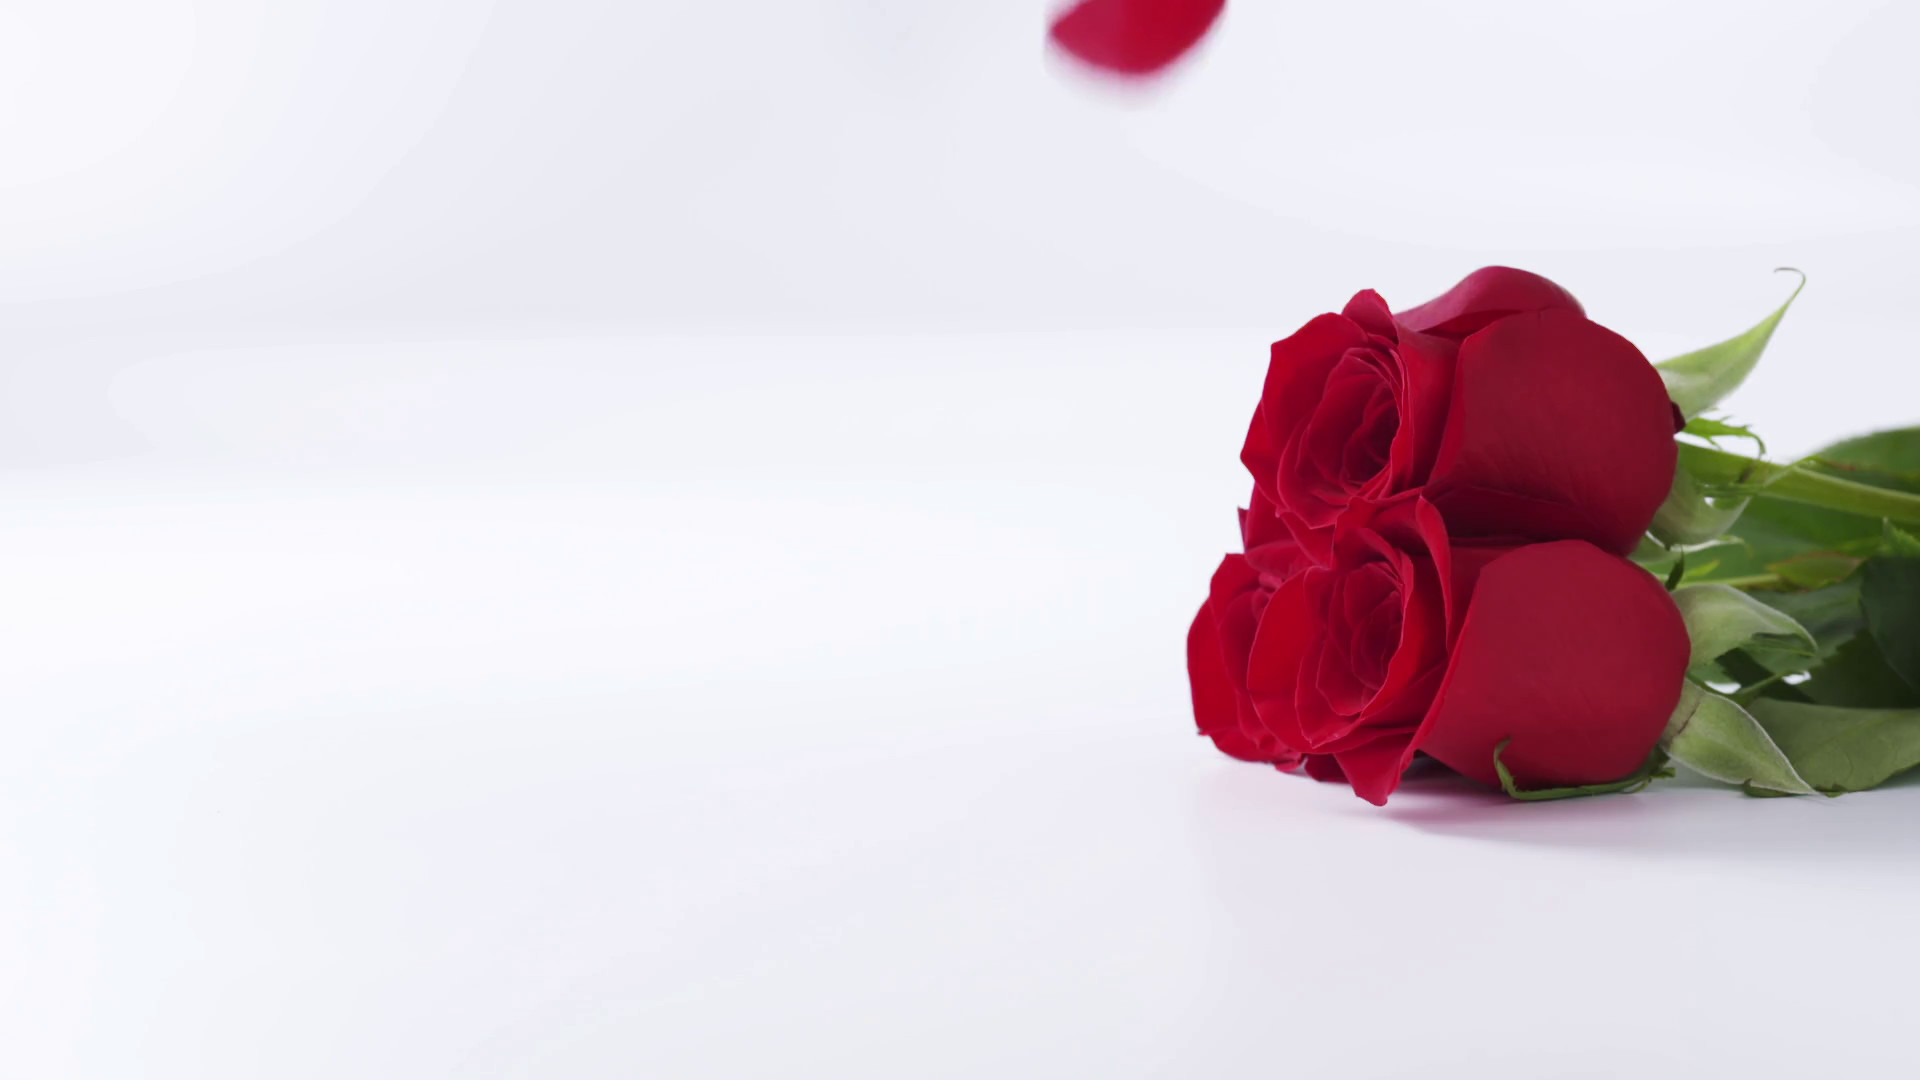 1920x1080 Slow motion of three red roses with falling petals on white background,  180fps prores footage Stock Video Footage - Storyblocks Video